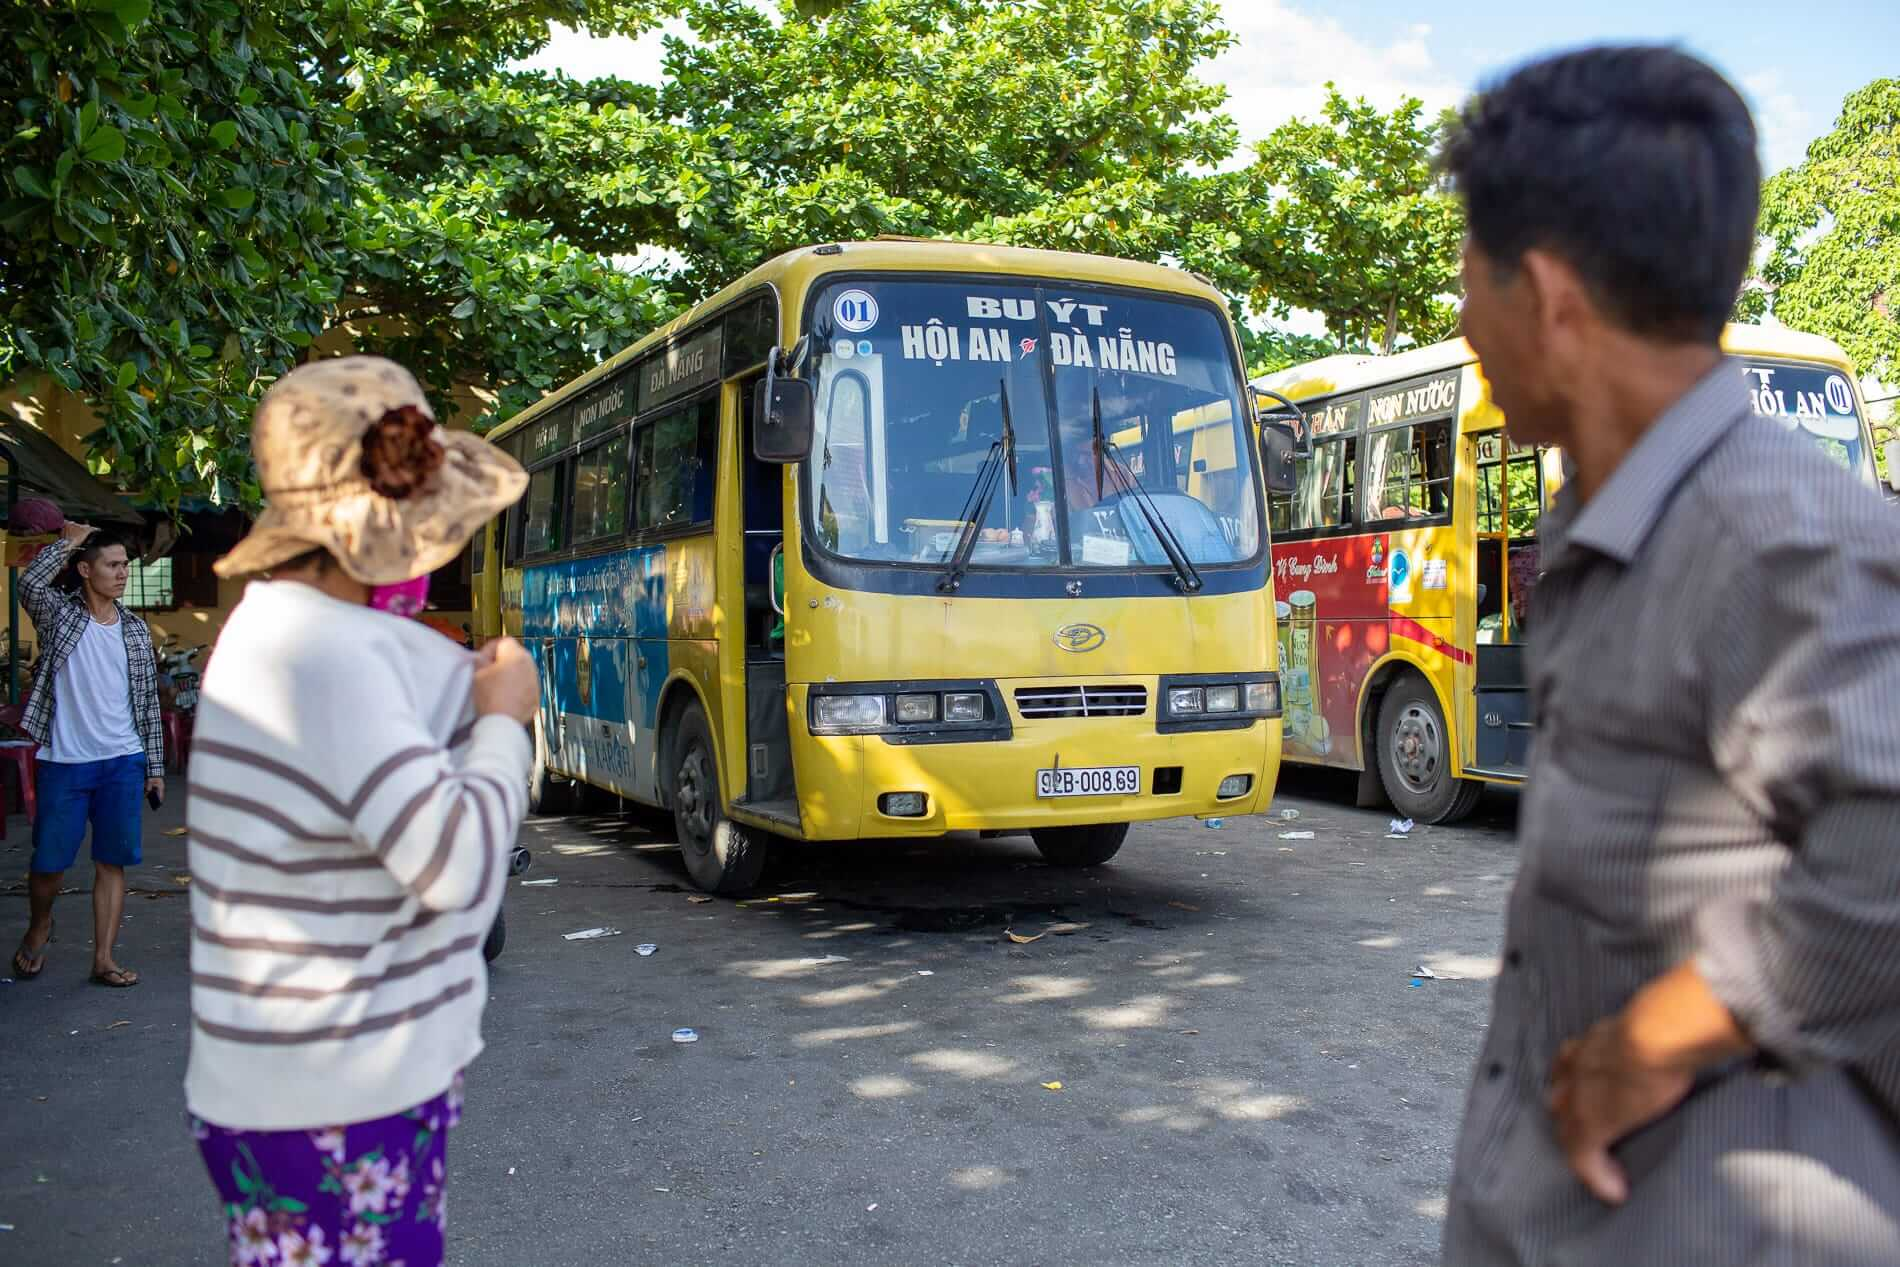 passengers check the Da Nang to Hoi An bus 1